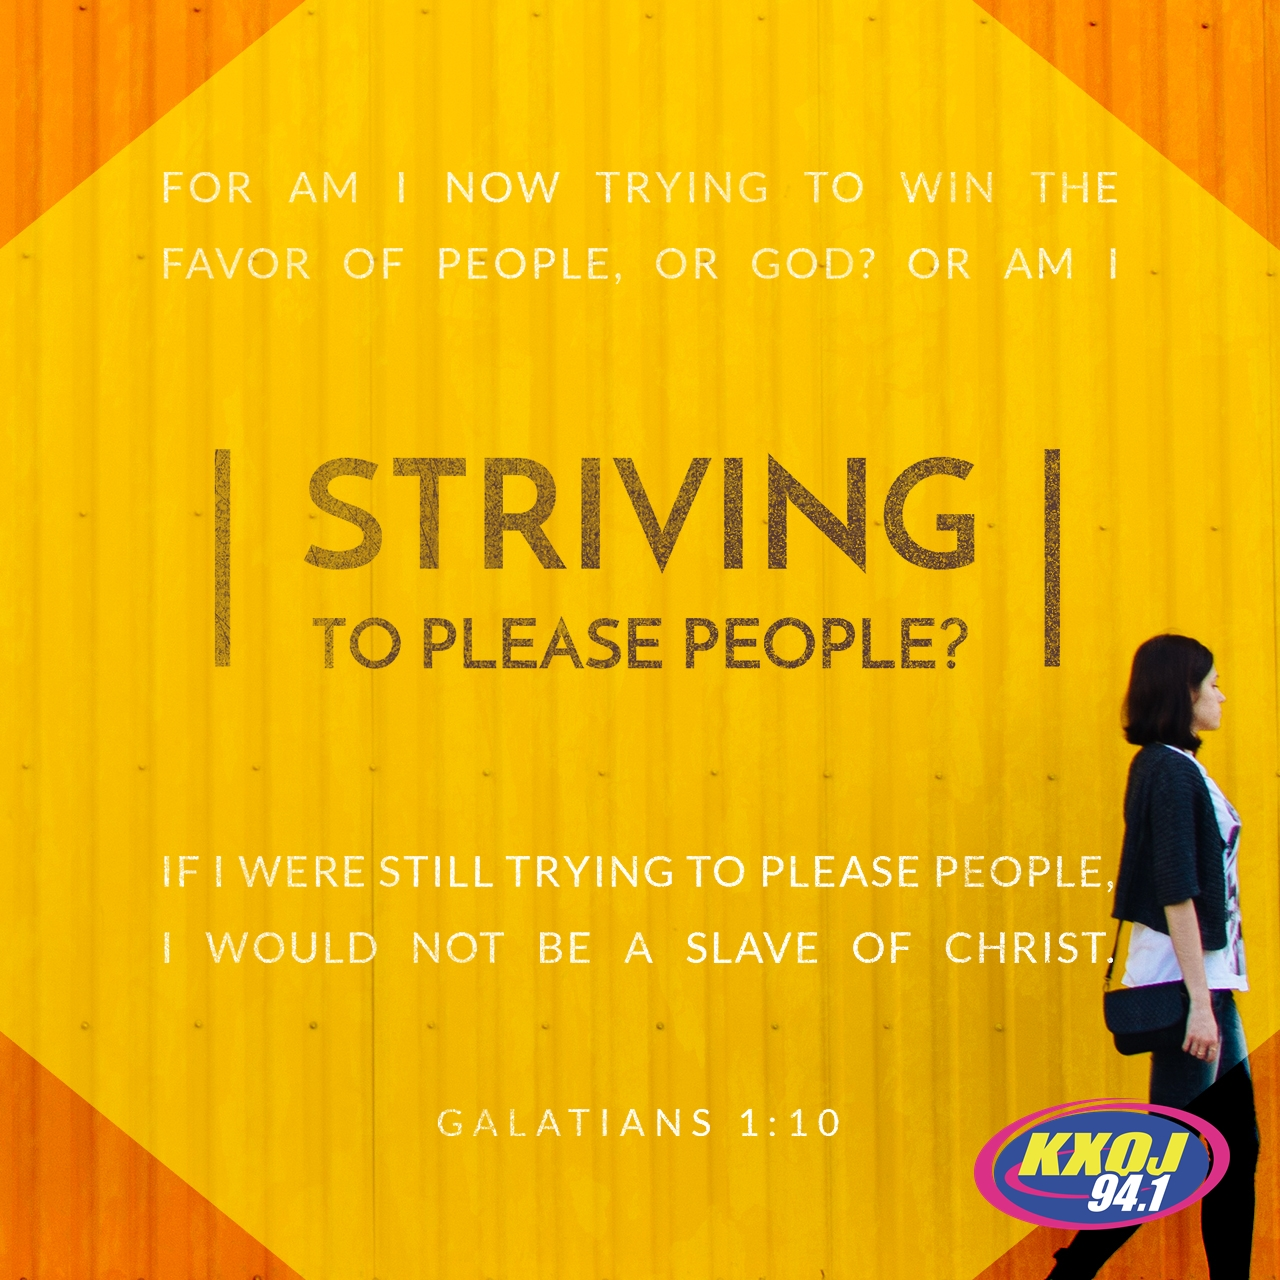 January 21st - Galatians 1:10